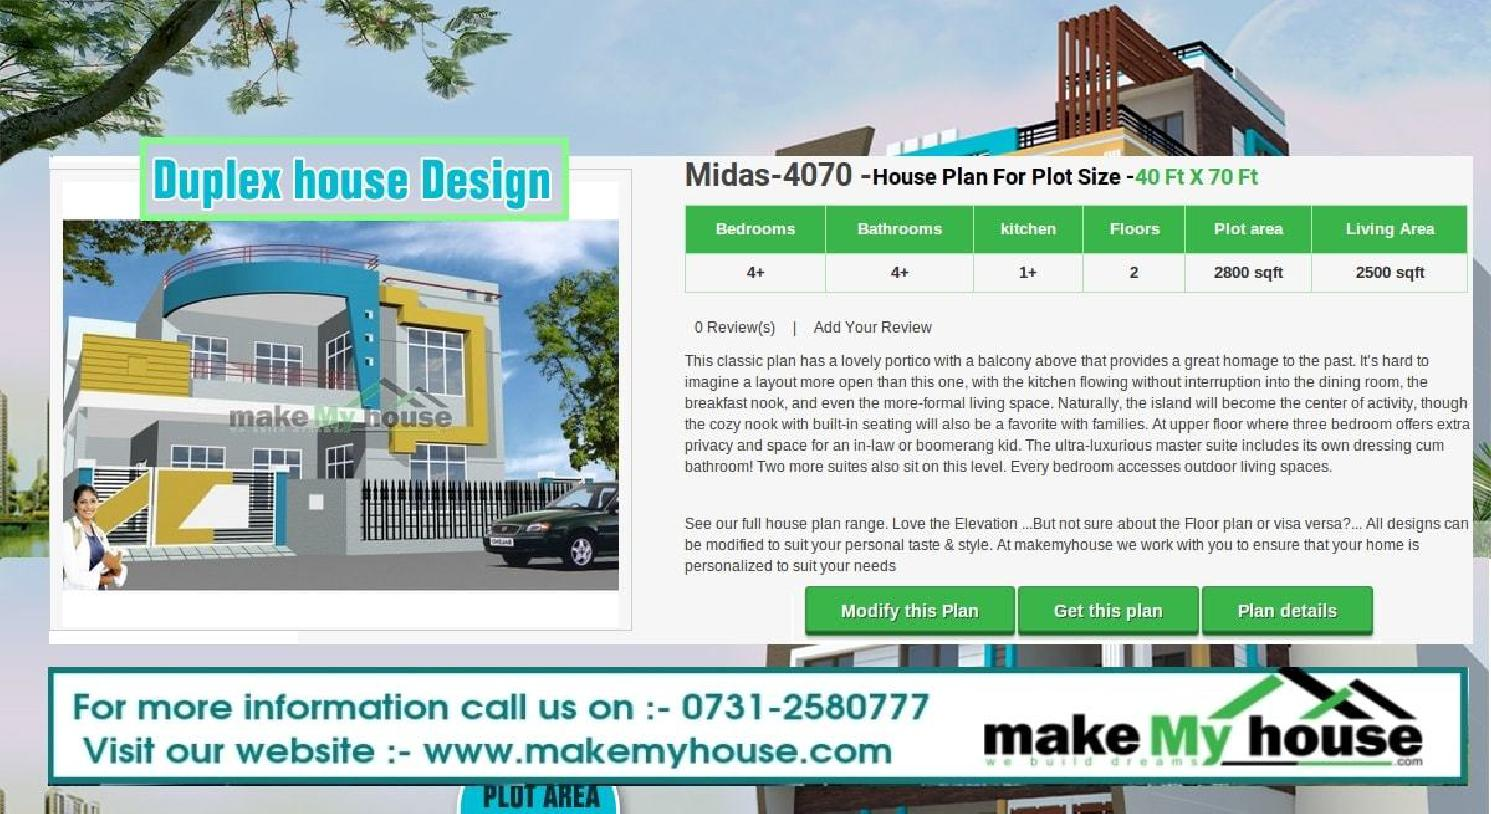 Duplex house design by Make My House by makemyhouse - issuu